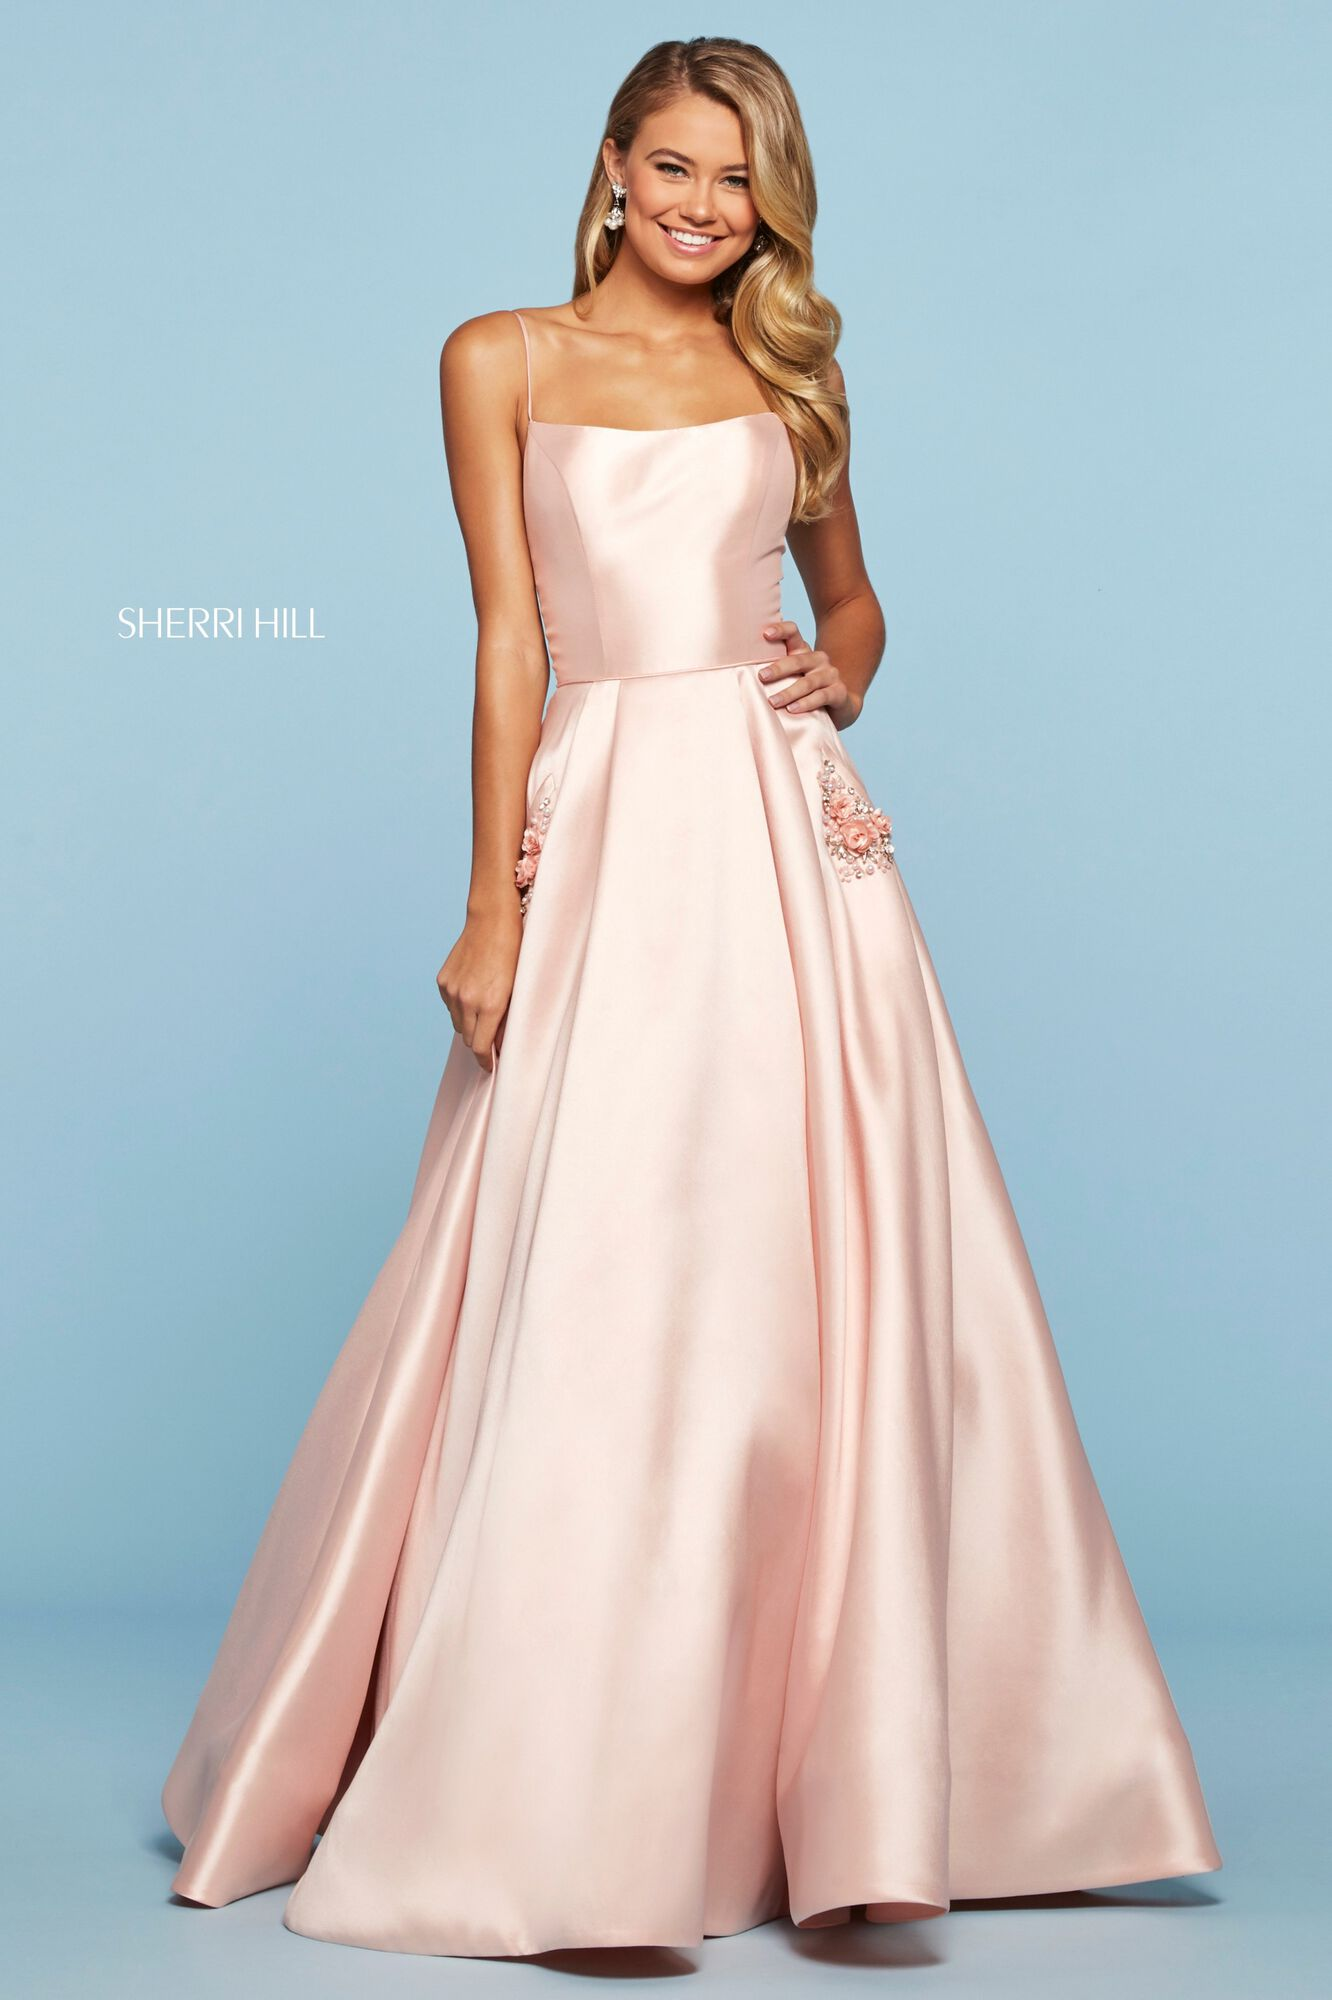 Buy Dress Style 53407 Designed By Sherrihill,Fall Black Tie Wedding Guest Dresses